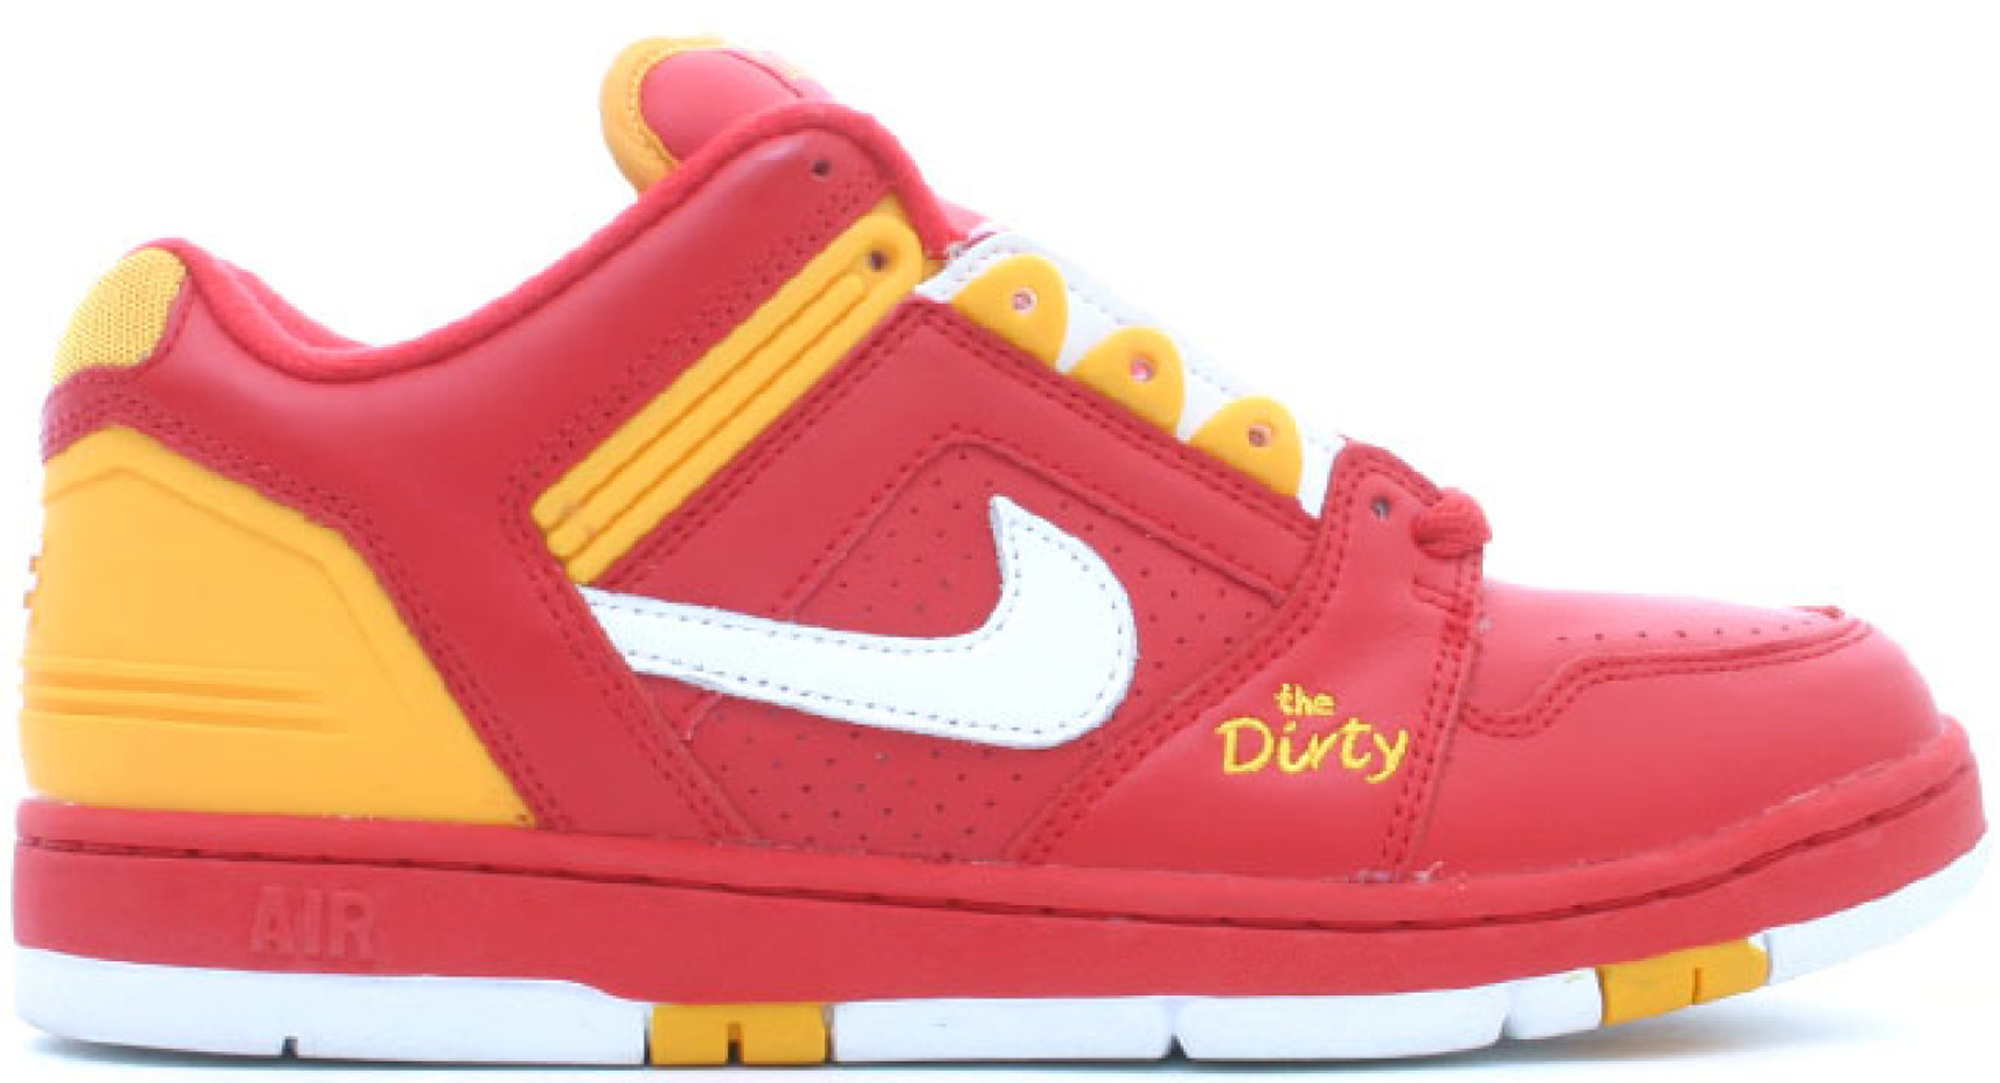 Nike Air Force 2 Low The Dirty - 305602-611